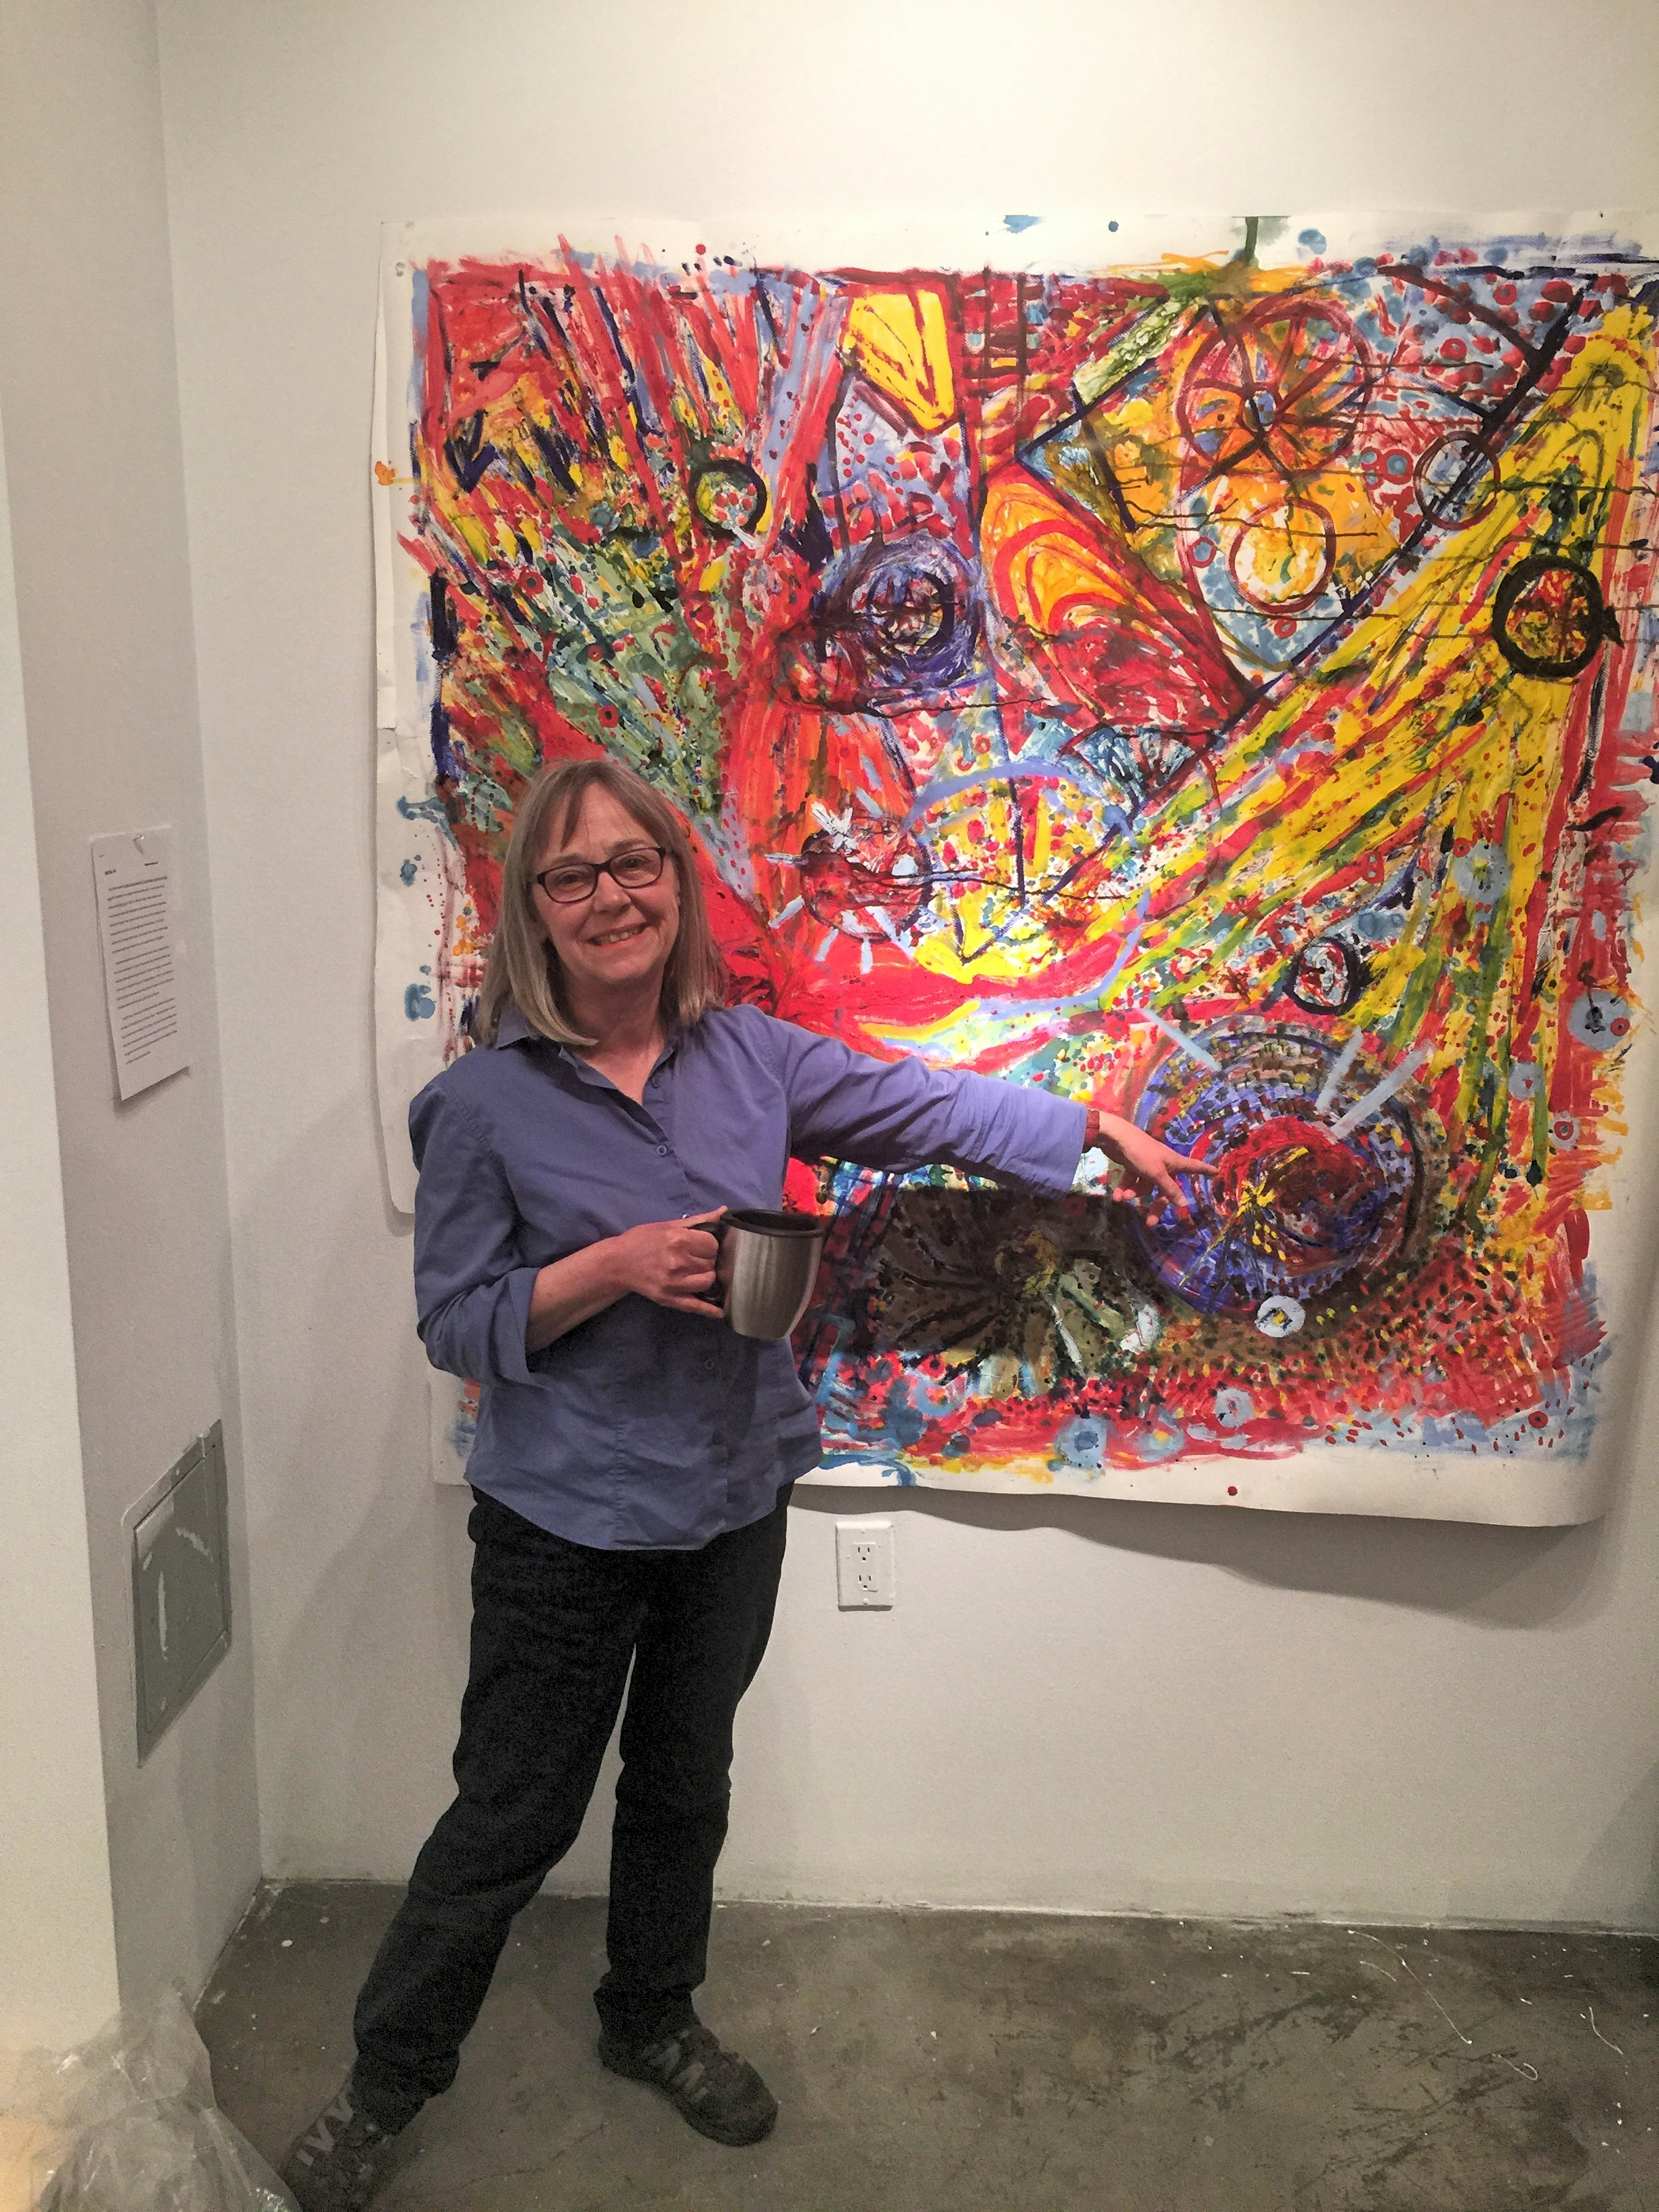 Here is Margaret standing in front of her painting at KPUthat is in conversation with her assignedartist Kerstin Bratsch.